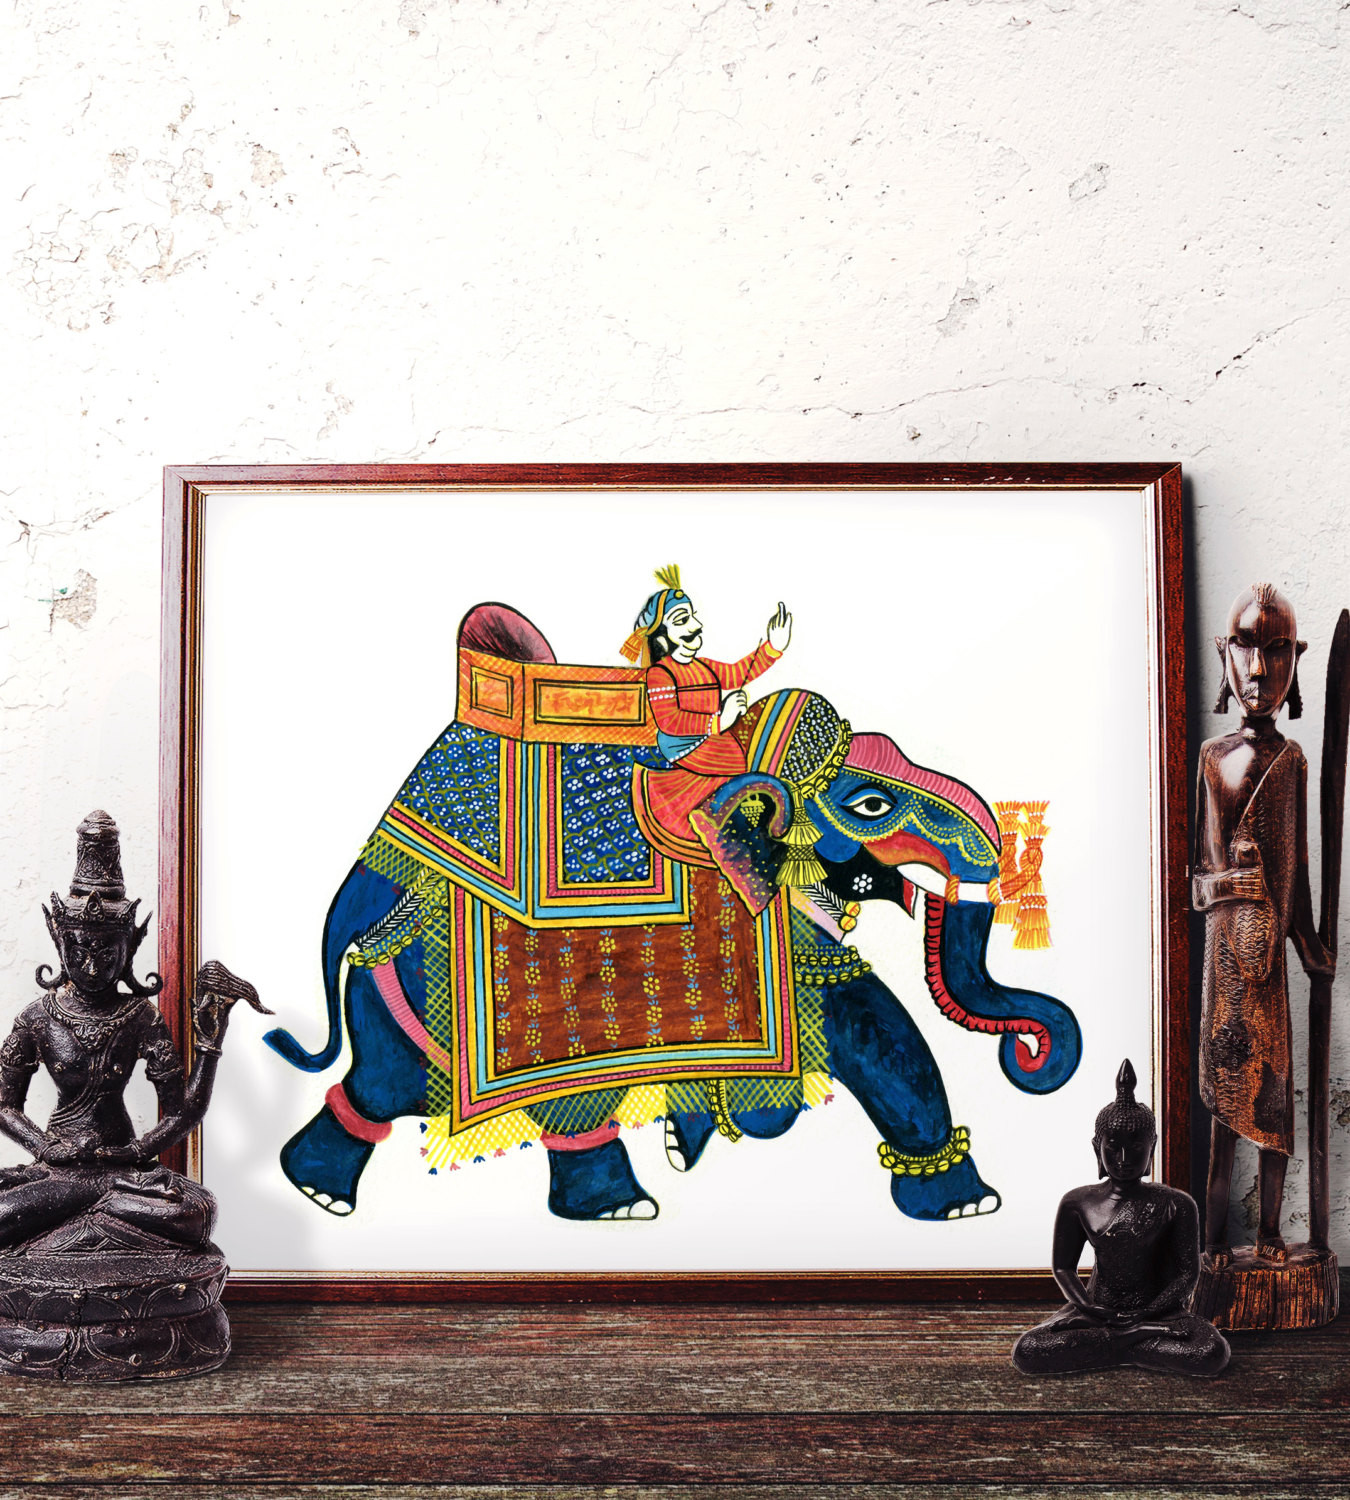 Best ideas about Elephant Wall Art . Save or Pin Elephant Wall Art Traditional Indian Elephant Watercolor Now.